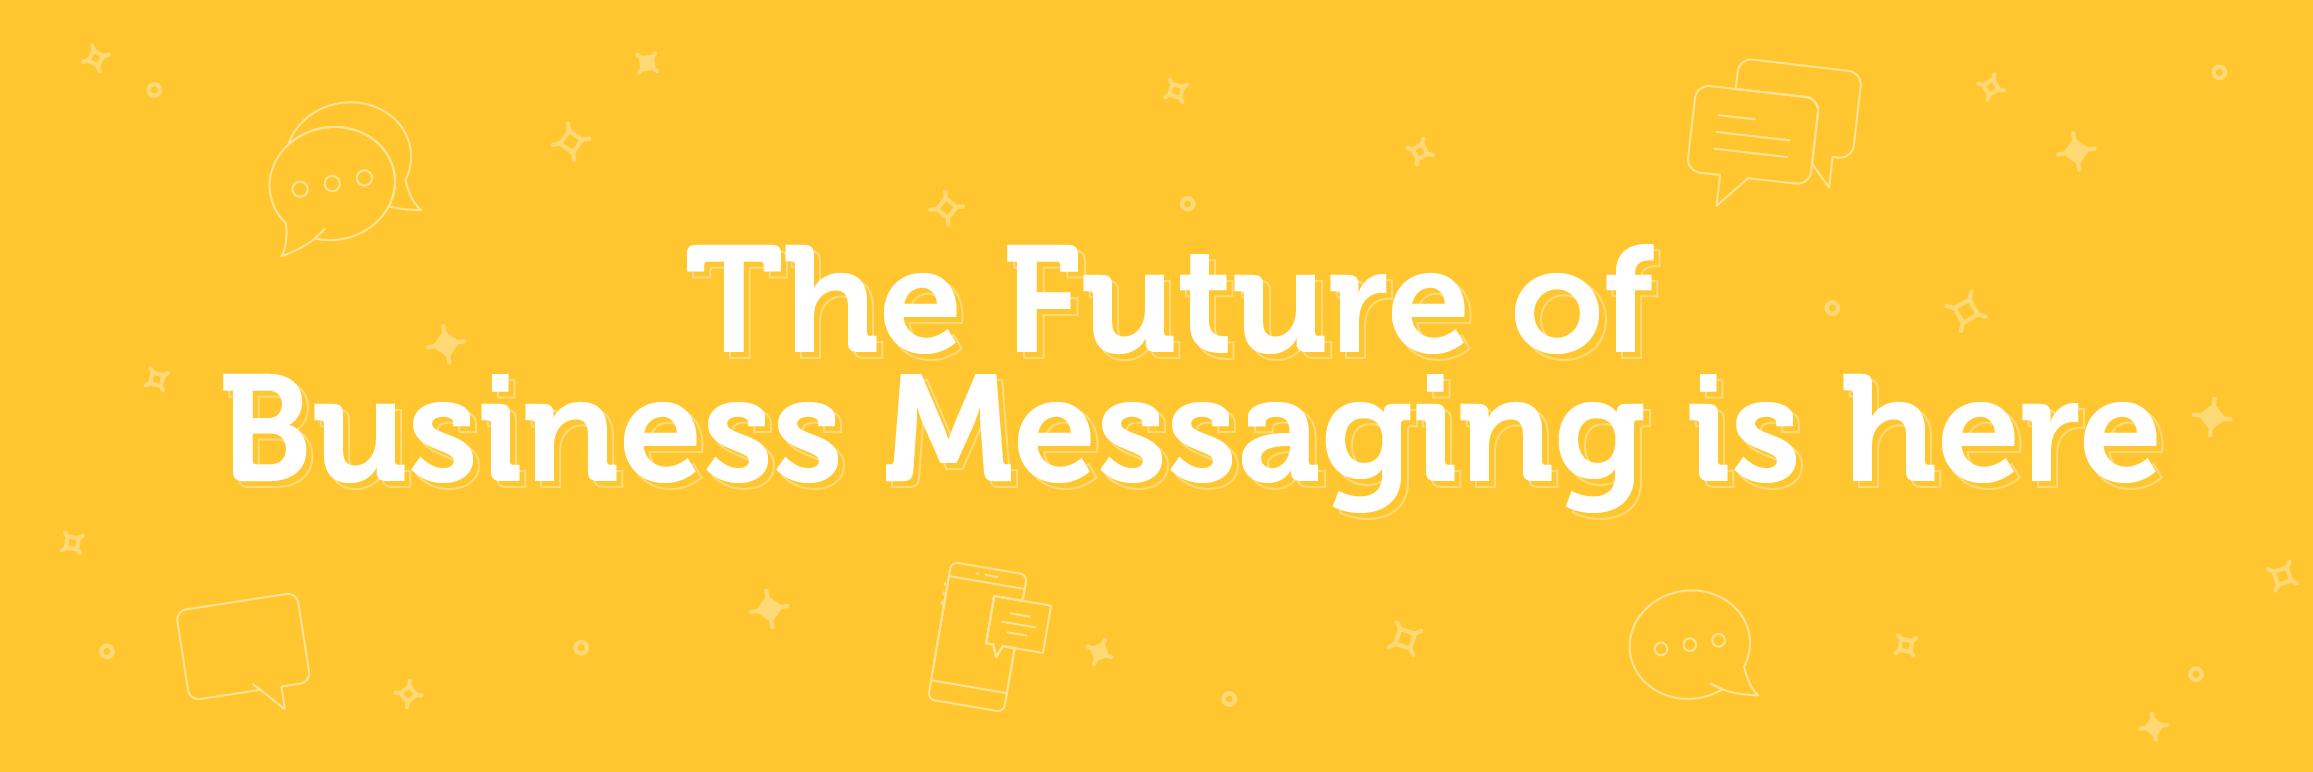 The future of business messaging